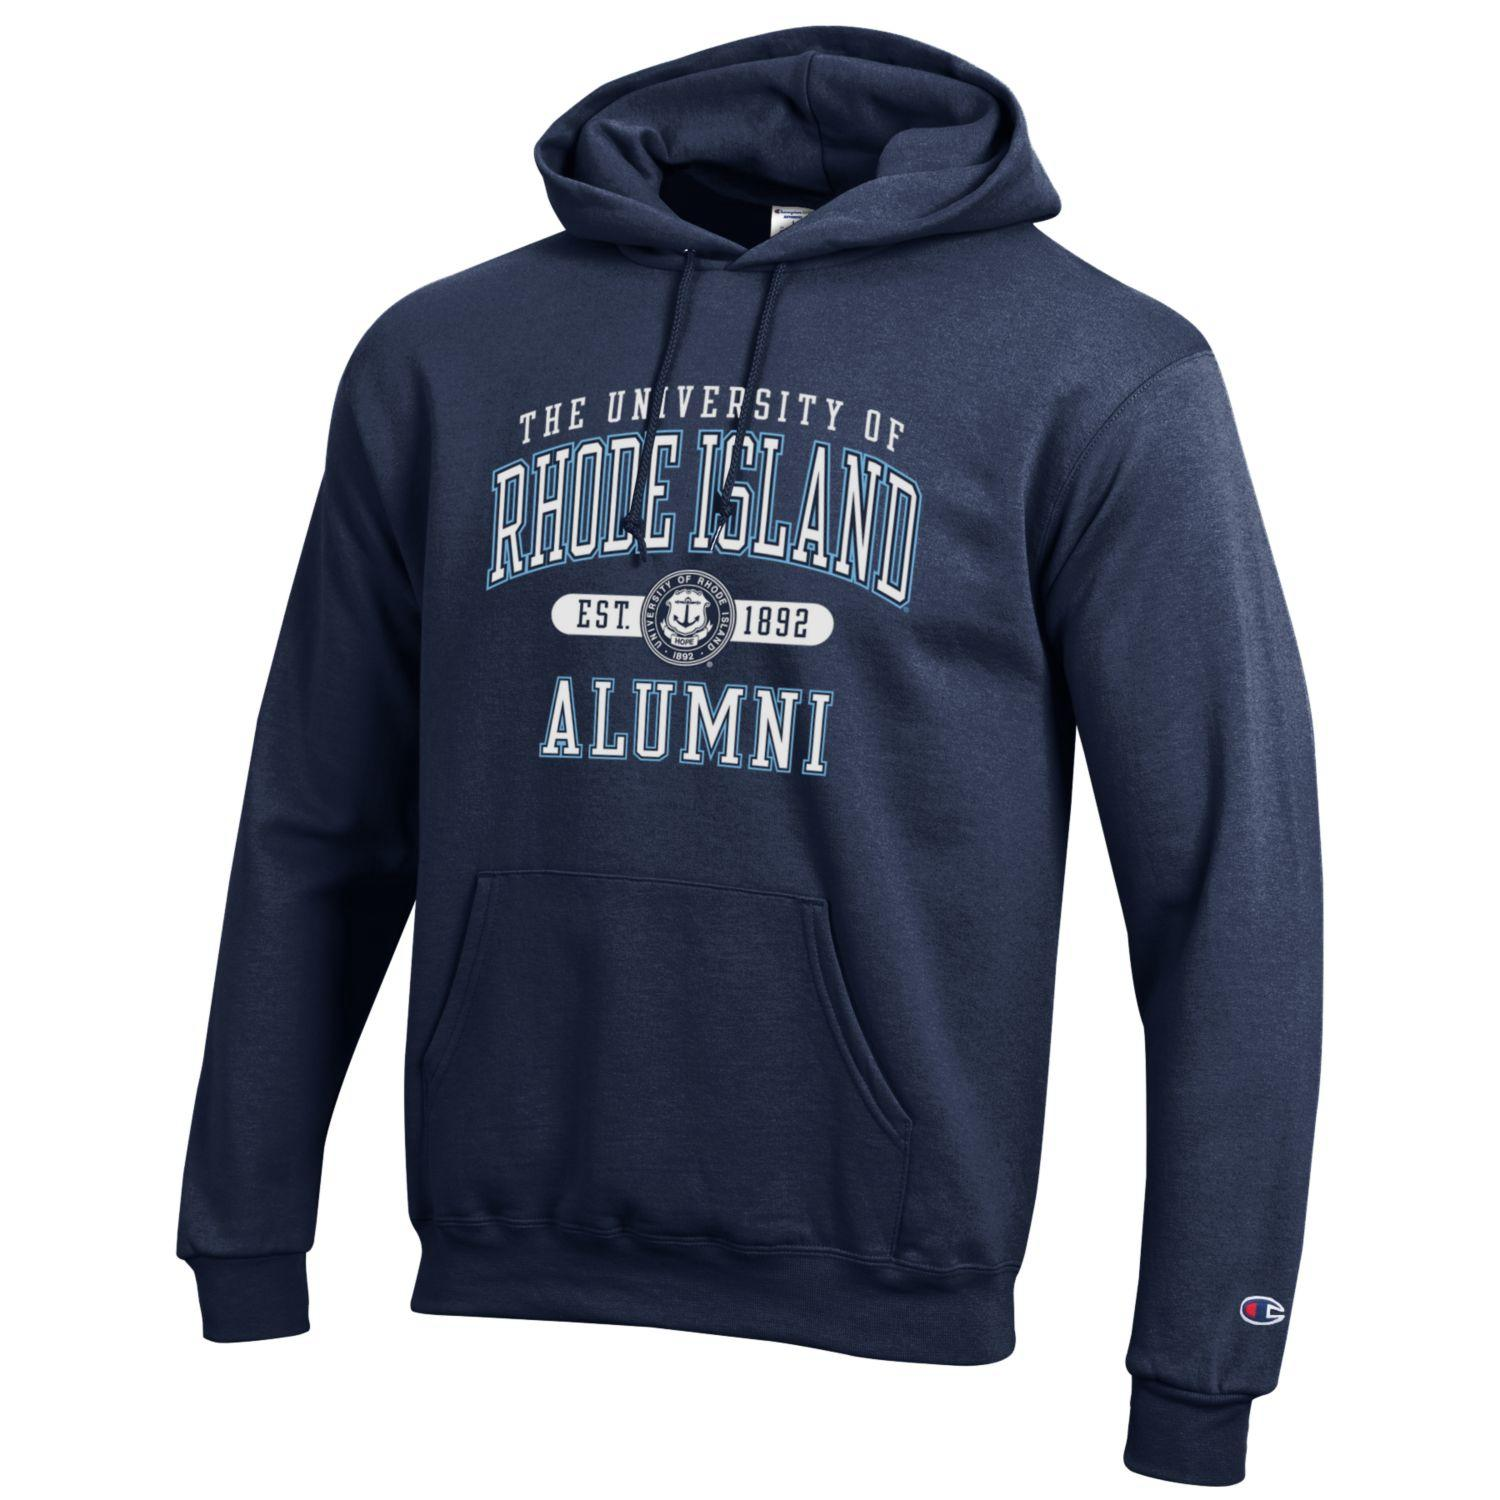 Cover Image For Champion Alumni Eco Powerblend Hood